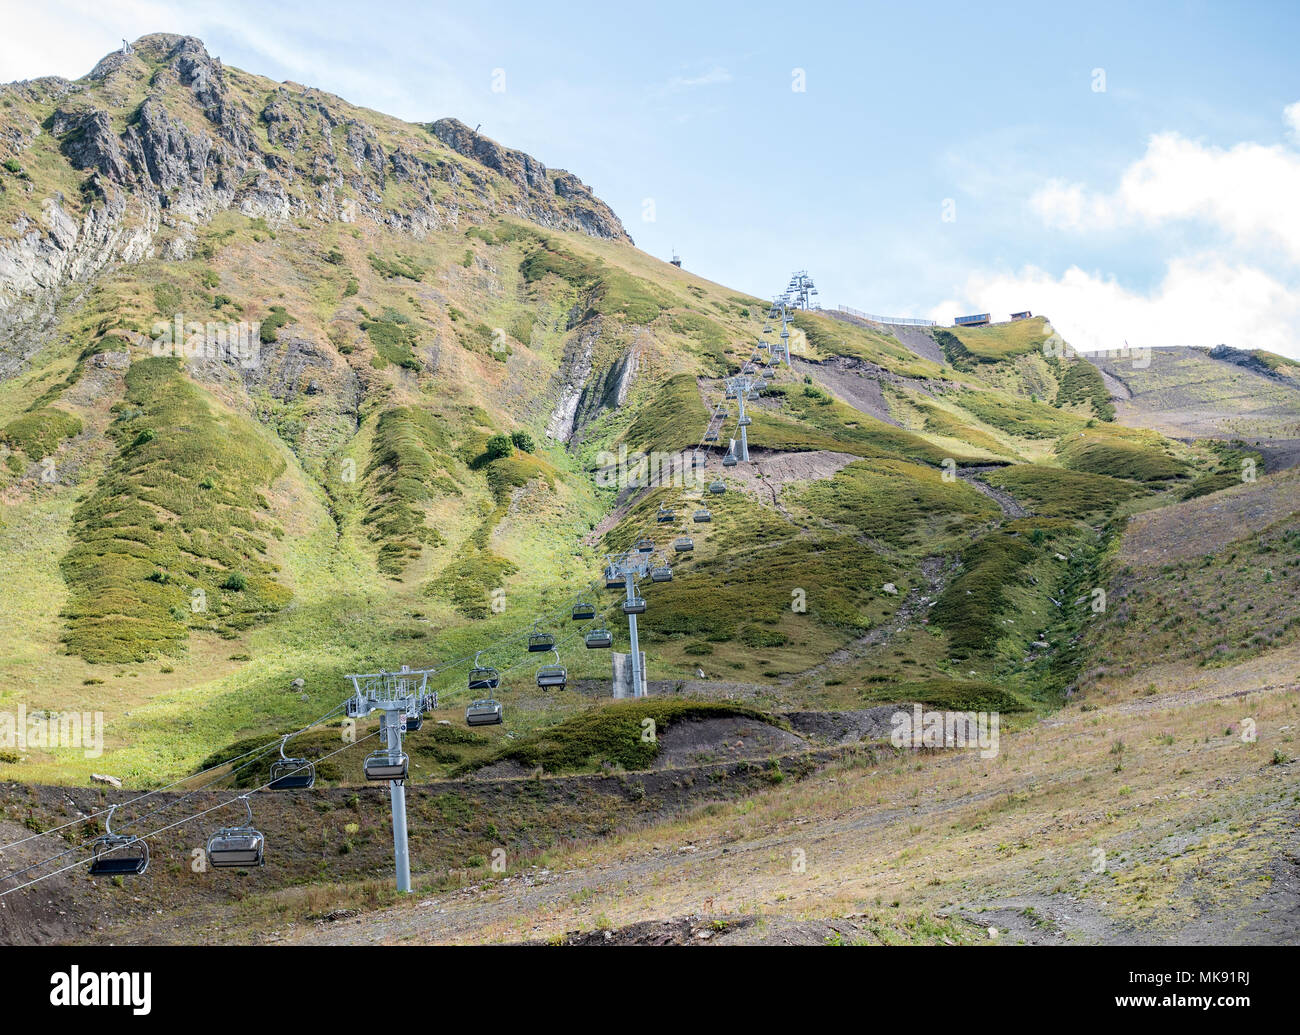 Image of funicular in mountain slope - Stock Image